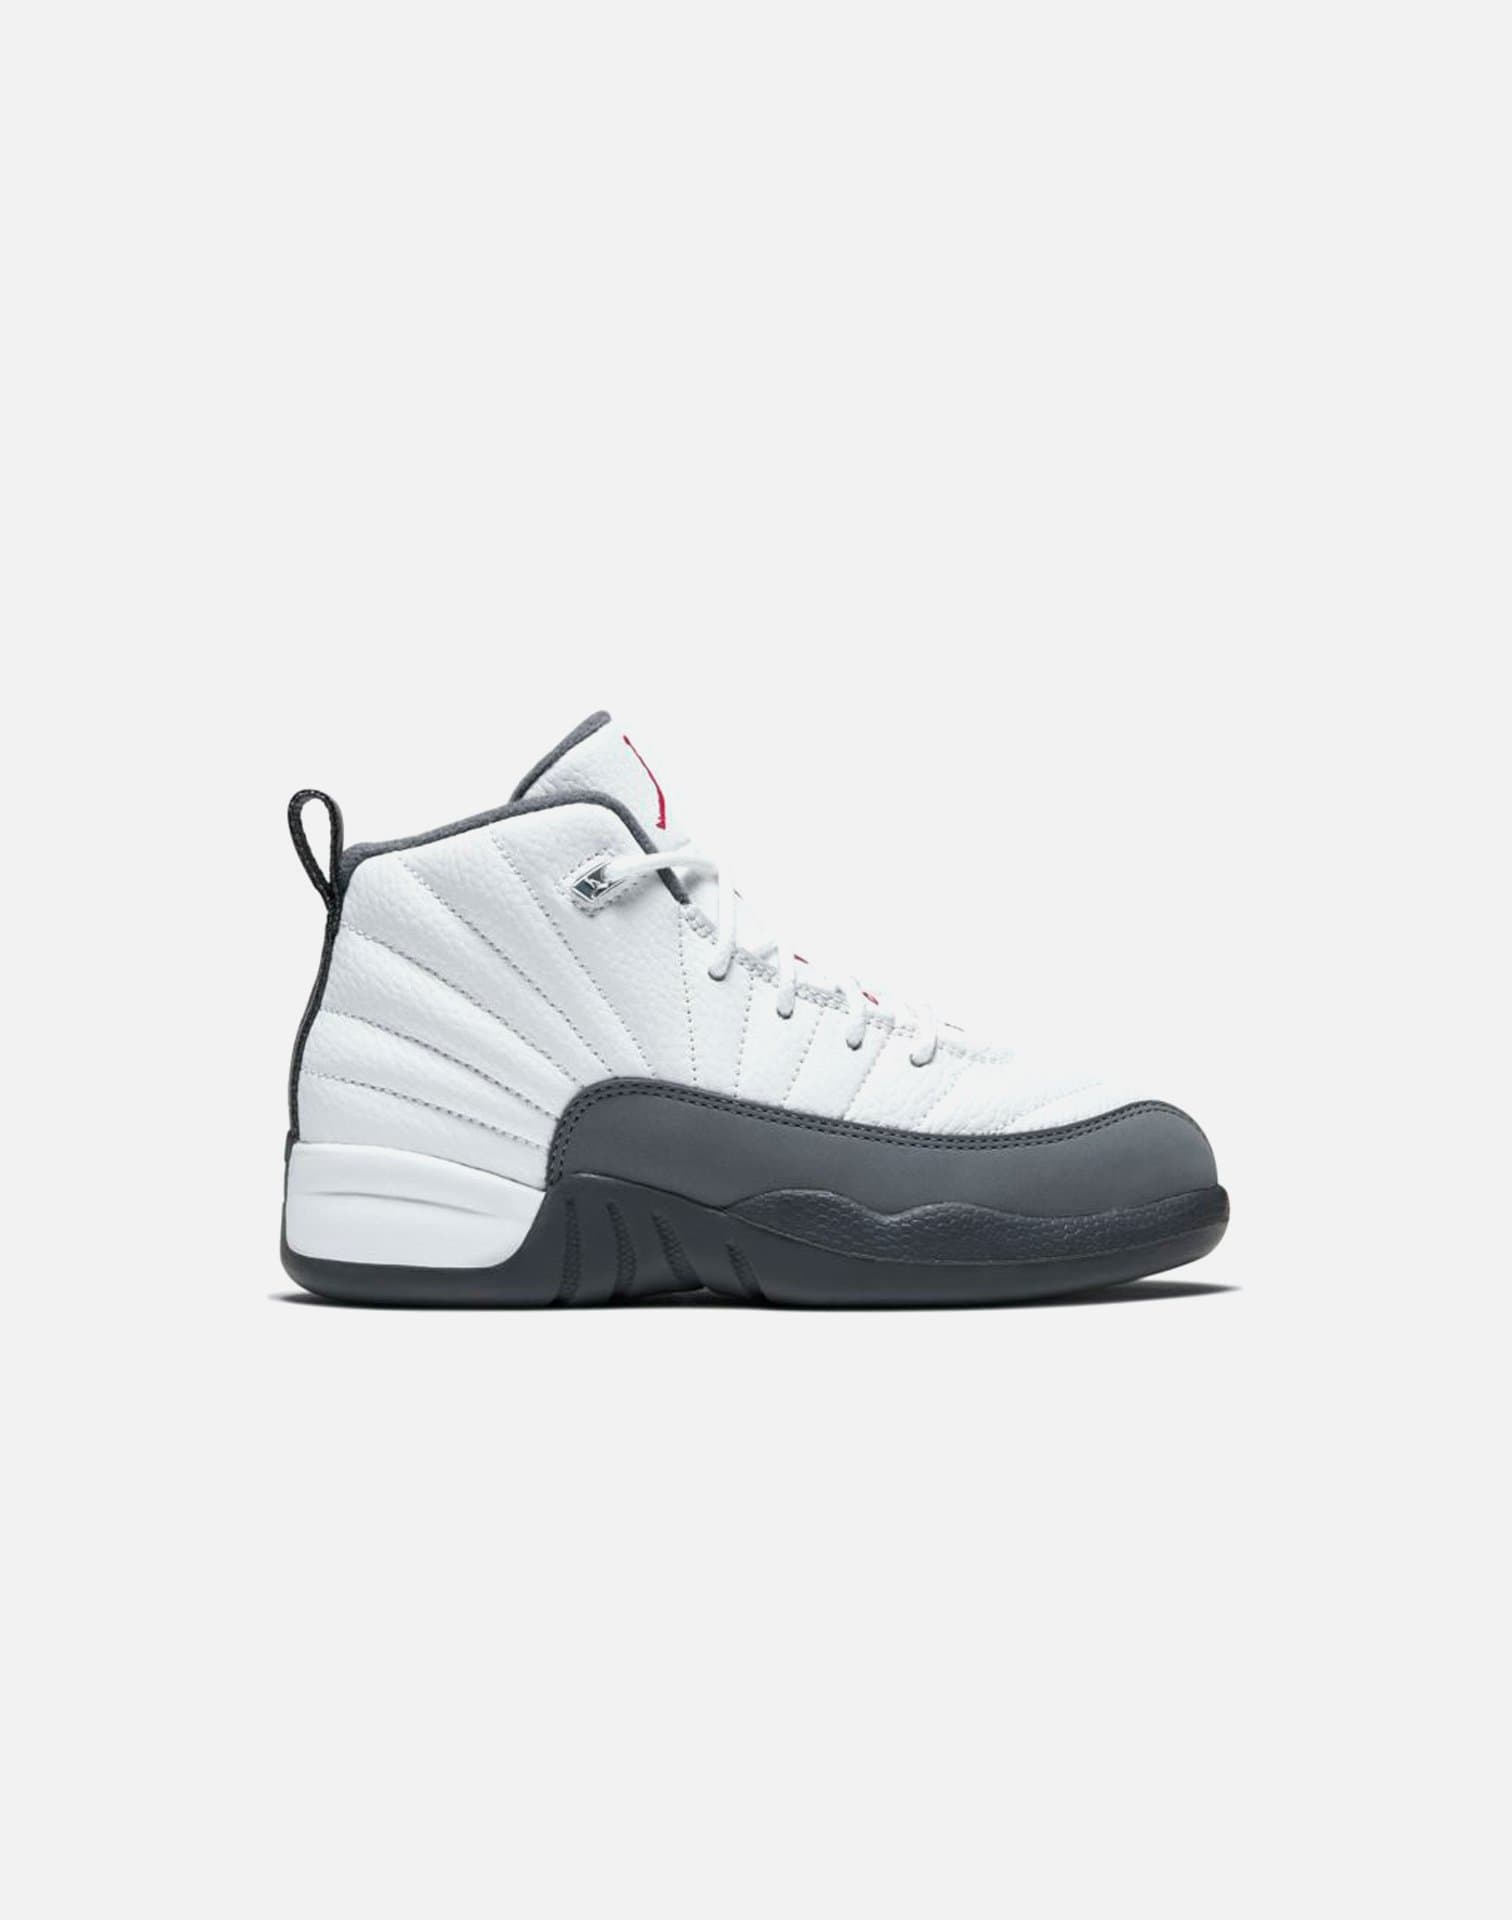 Jordan AIR JORDAN RETRO 12 'DARK GREY' GRADE-SCHOOL